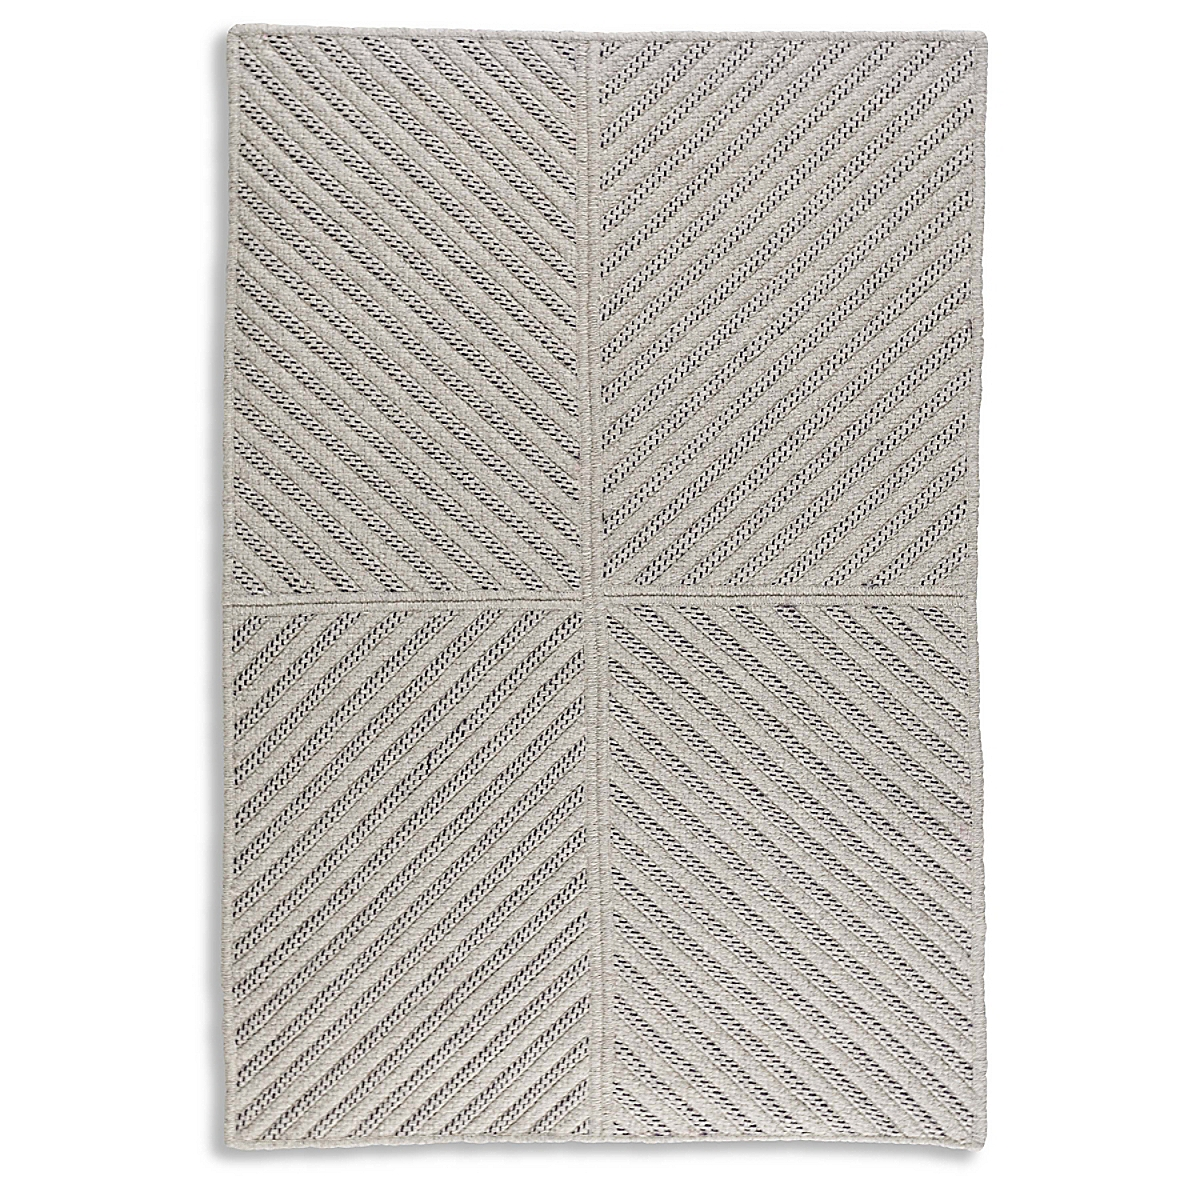 Four Points Diagonal Rug - Plum